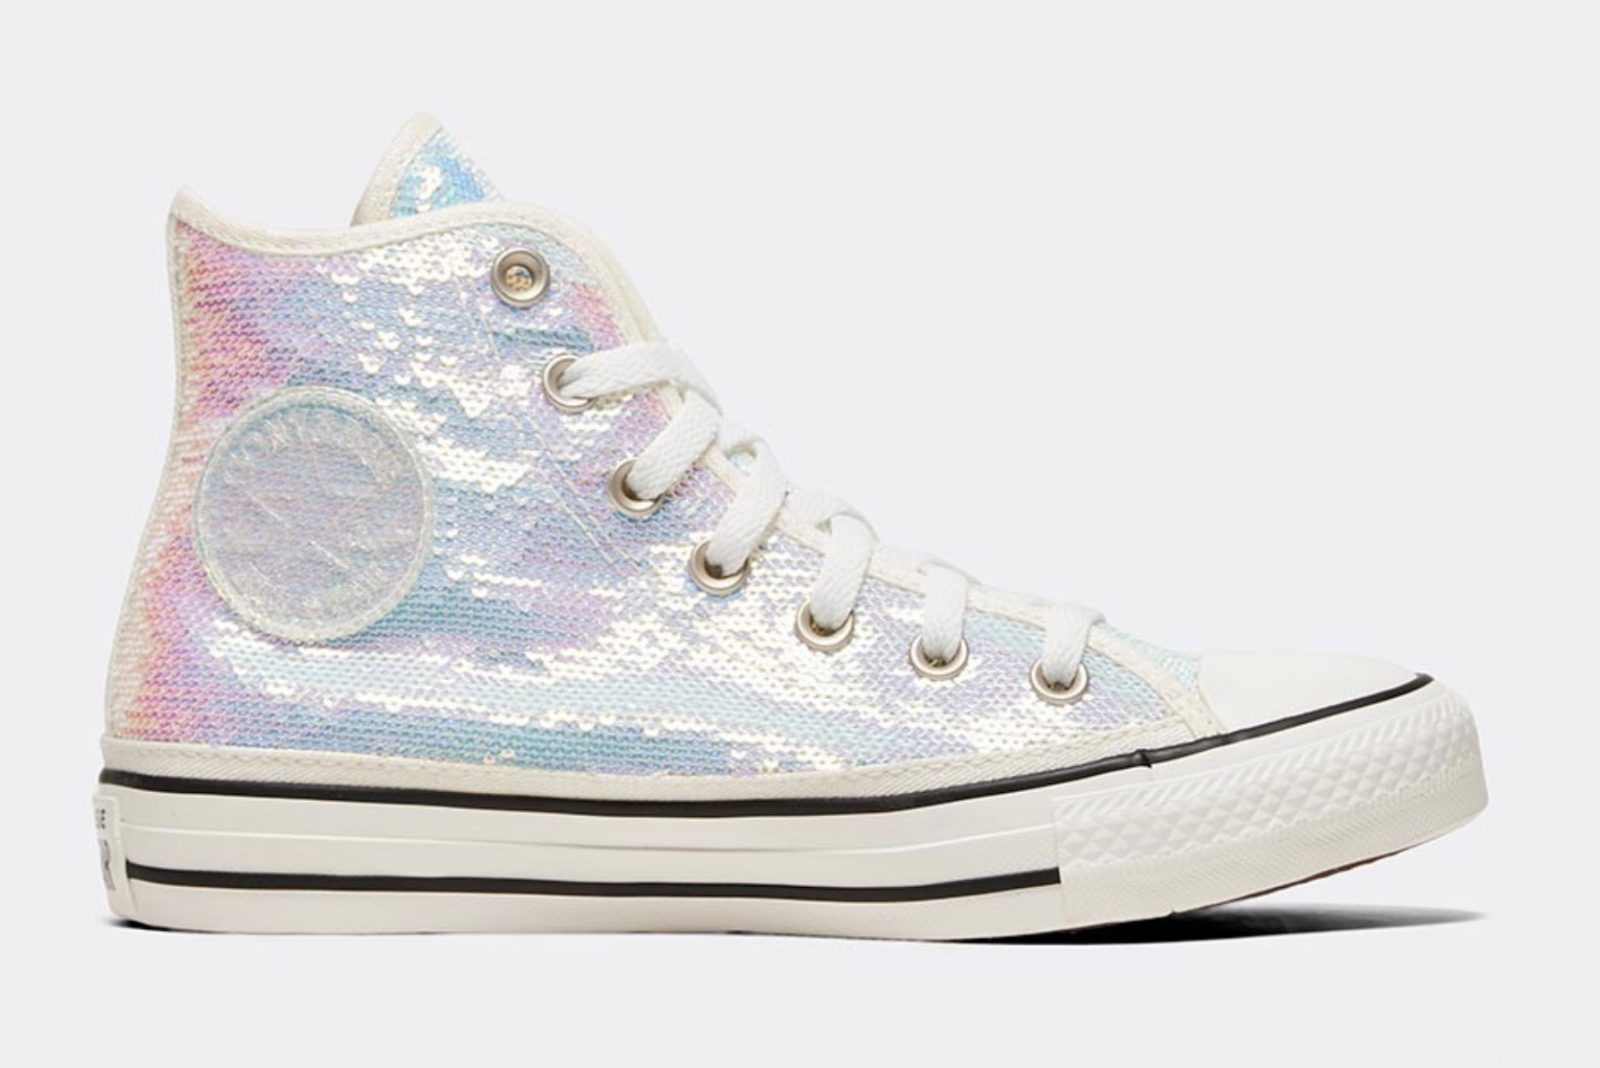 Converse Celebrate Their Chuck Taylor Silhouette In A Complete Sequin Look 4 brand tag